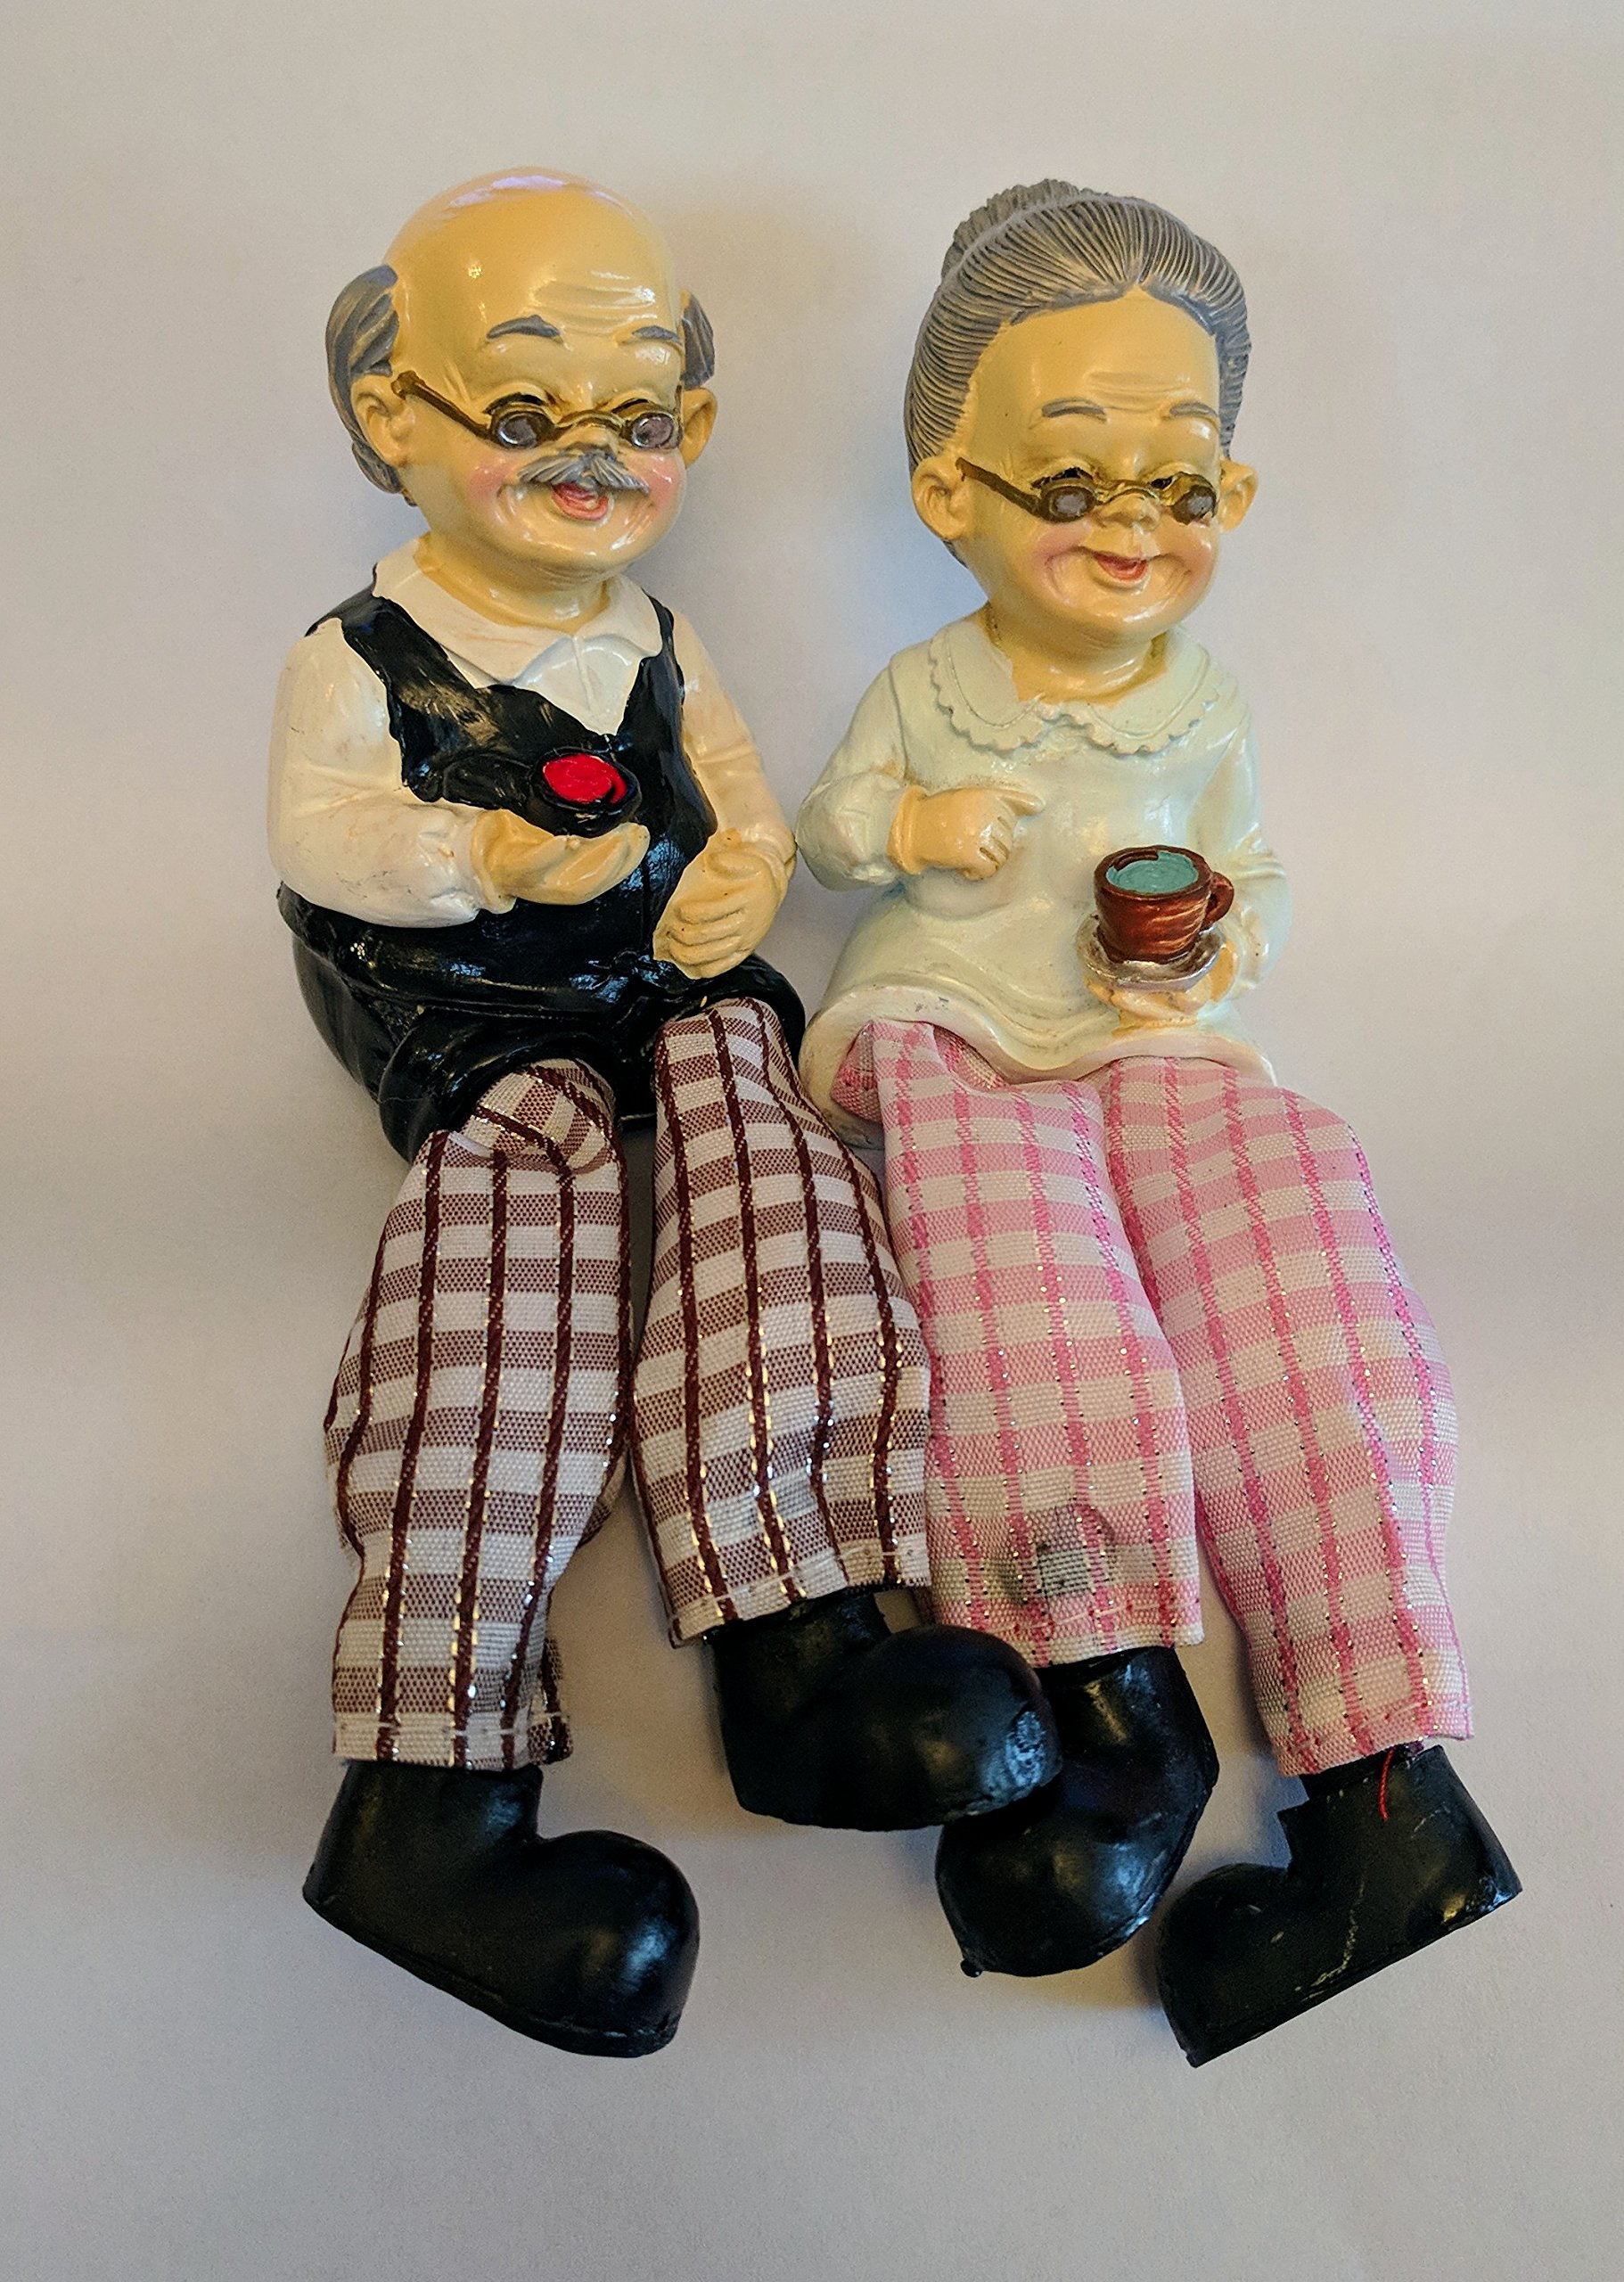 Wonderful Store Pack (2) Decor Shelf Sitters Dolls Grandfather & Grandmother. A Beautiful Ornament For Every Home Or Office by Wonderful Store